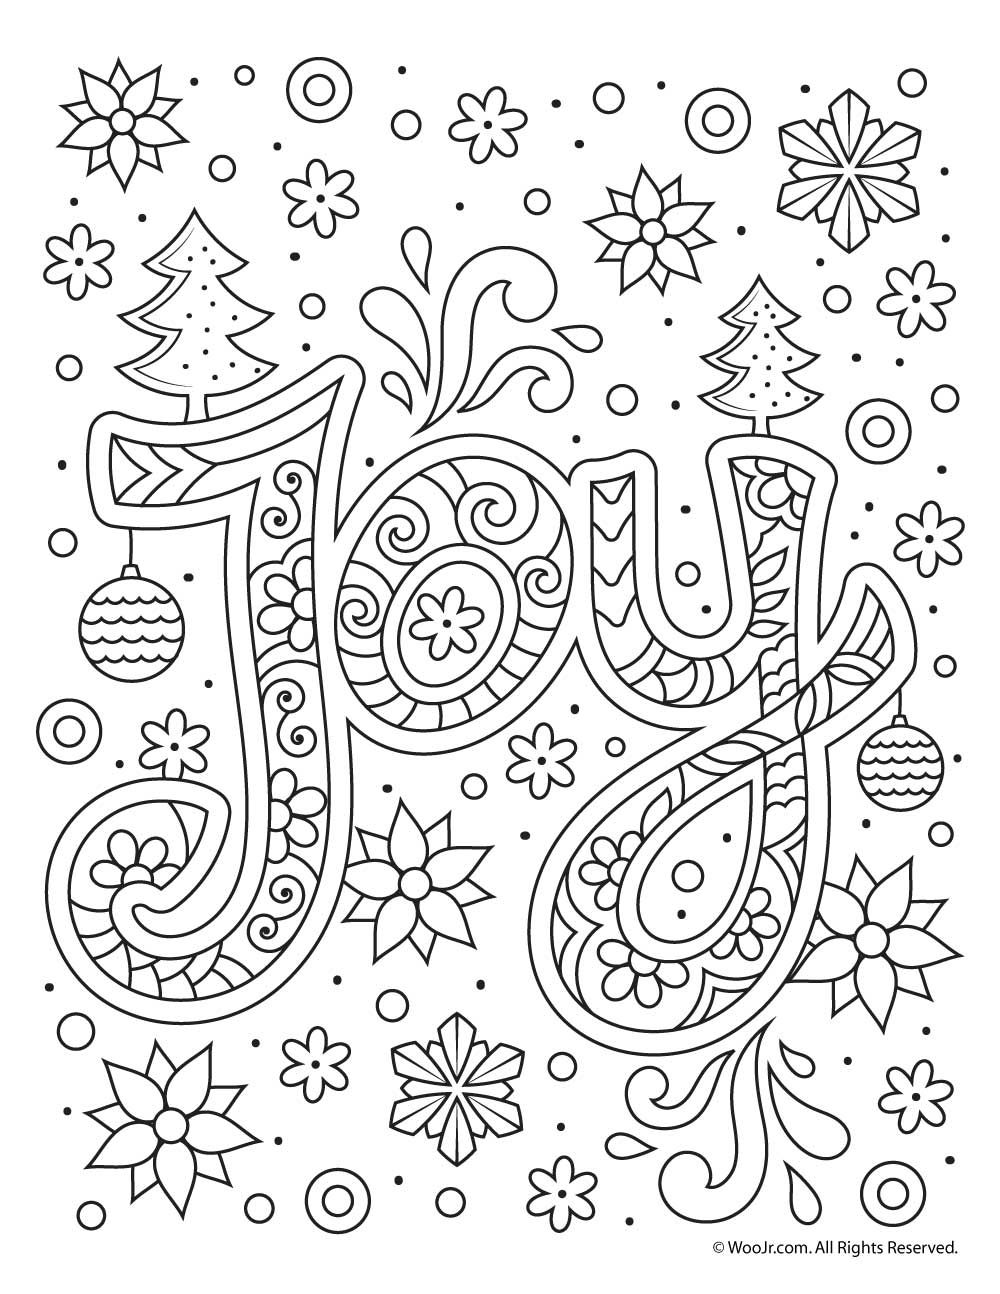 Christmas Joy Typography Coloring Page Woo Jr Kids Activities Christmas Coloring Sheets Printable Christmas Coloring Pages Free Christmas Coloring Pages